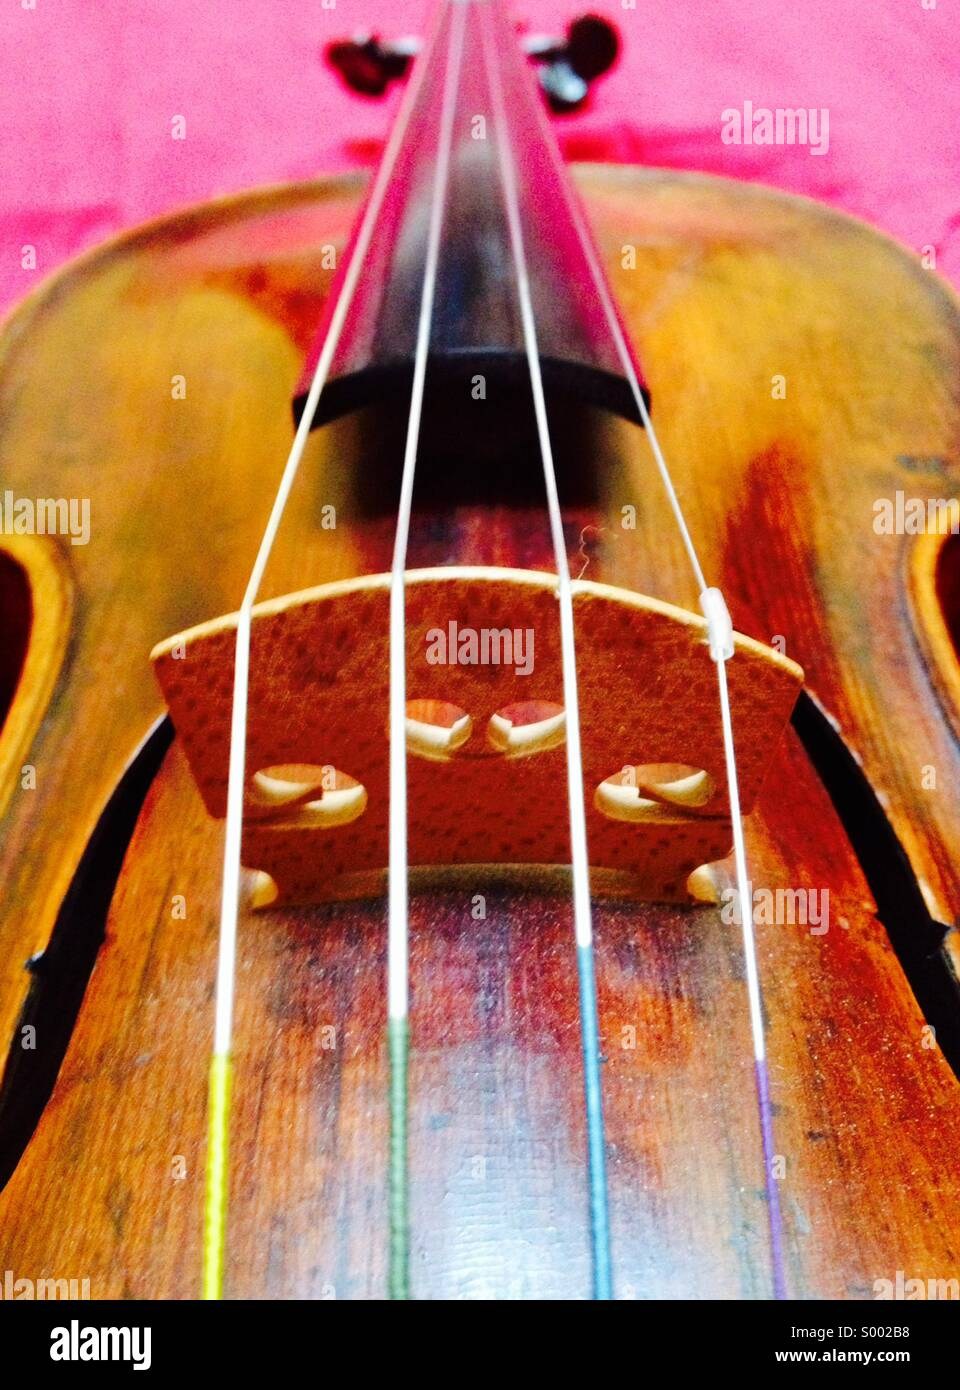 Violon, Close up de chaînes et pont Banque D'Images